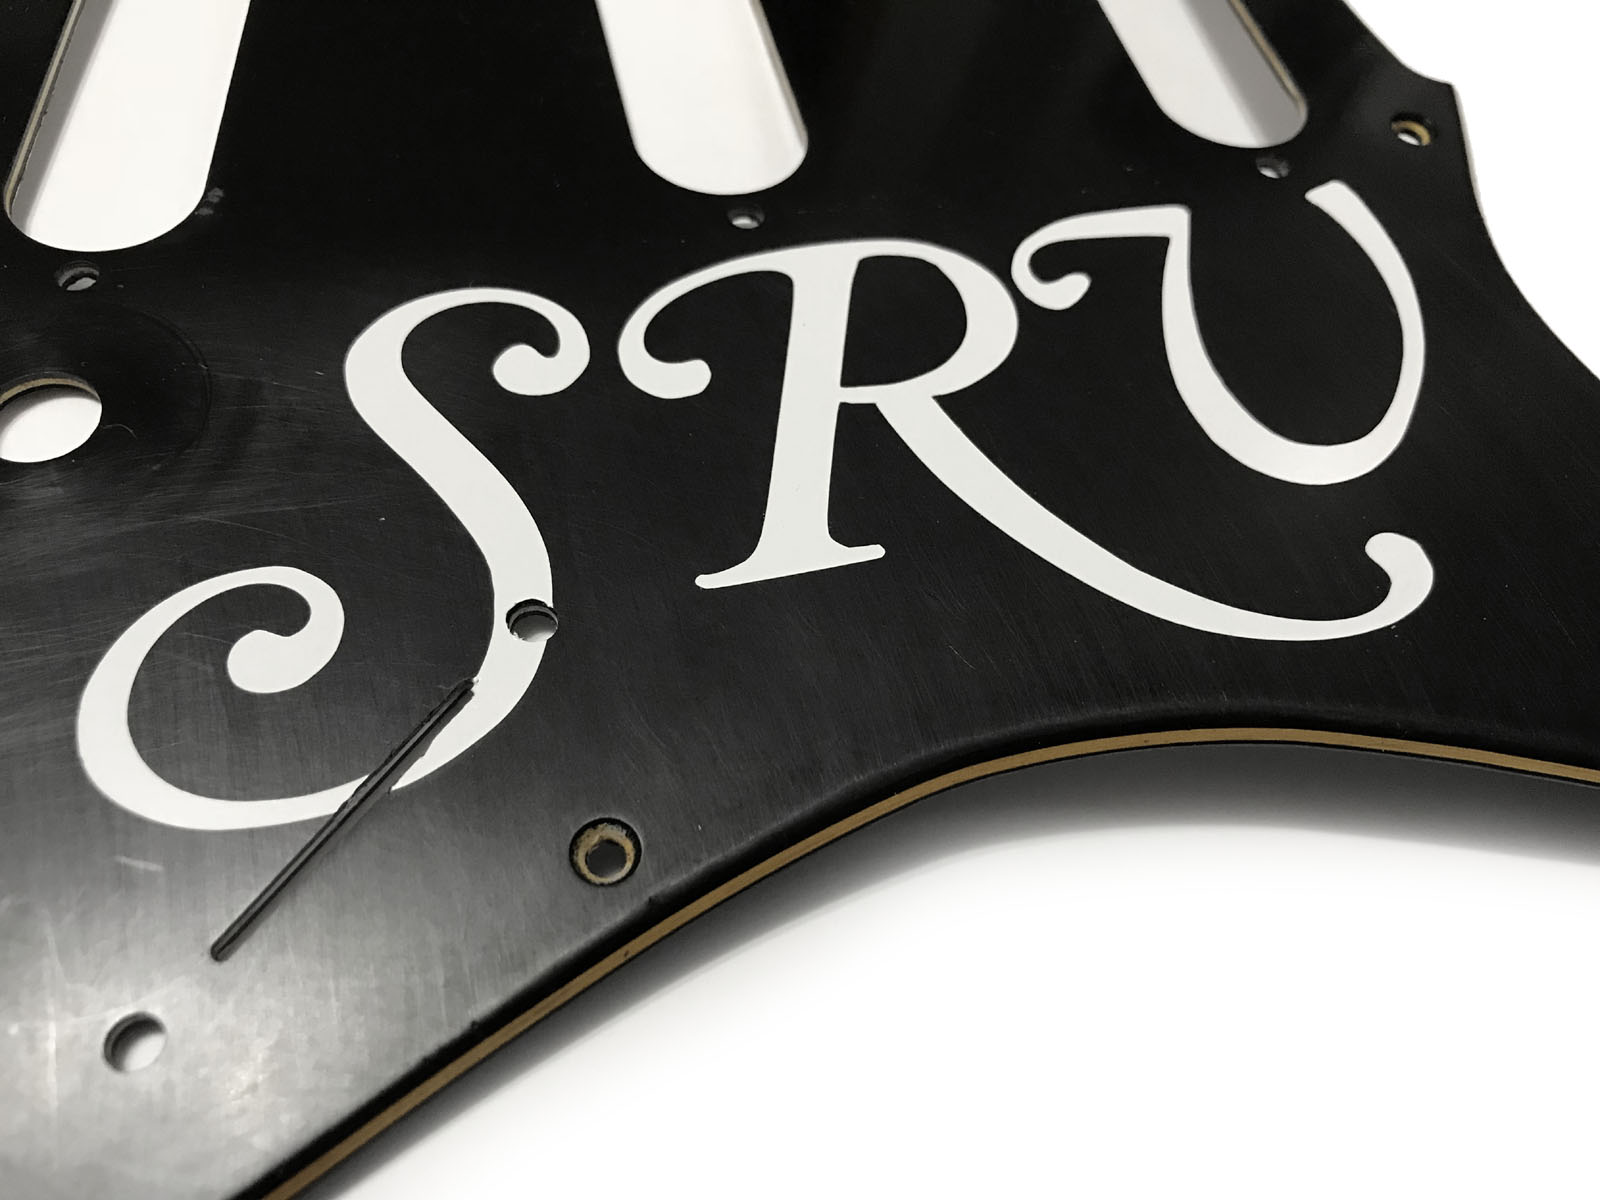 Script Replica Style Letters / Decals / Stickers